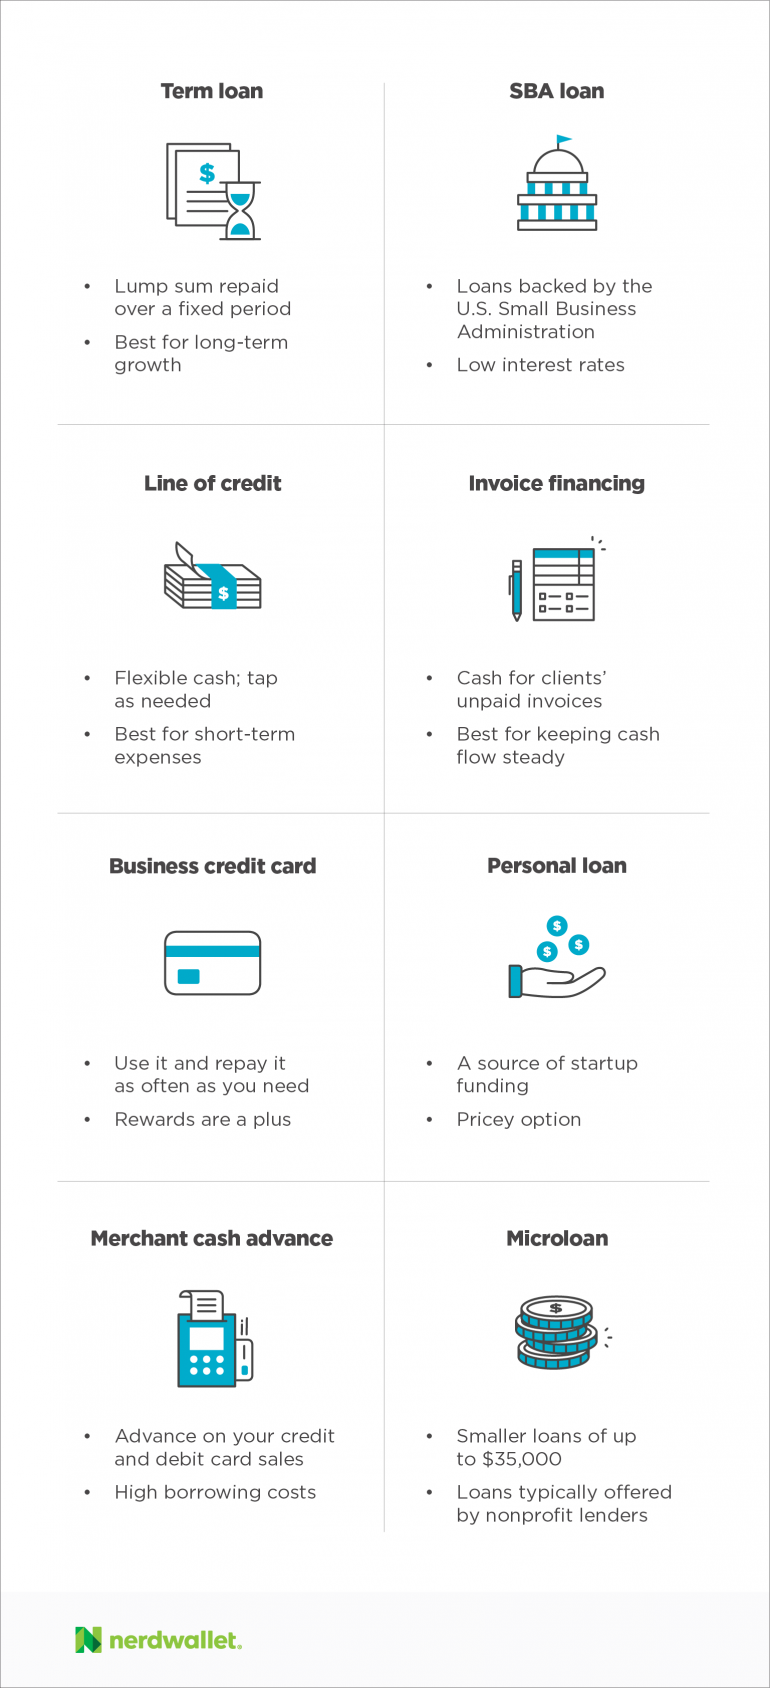 How to get a small business loan in 5 steps nerdwallet small business financing in simple terms colourmoves